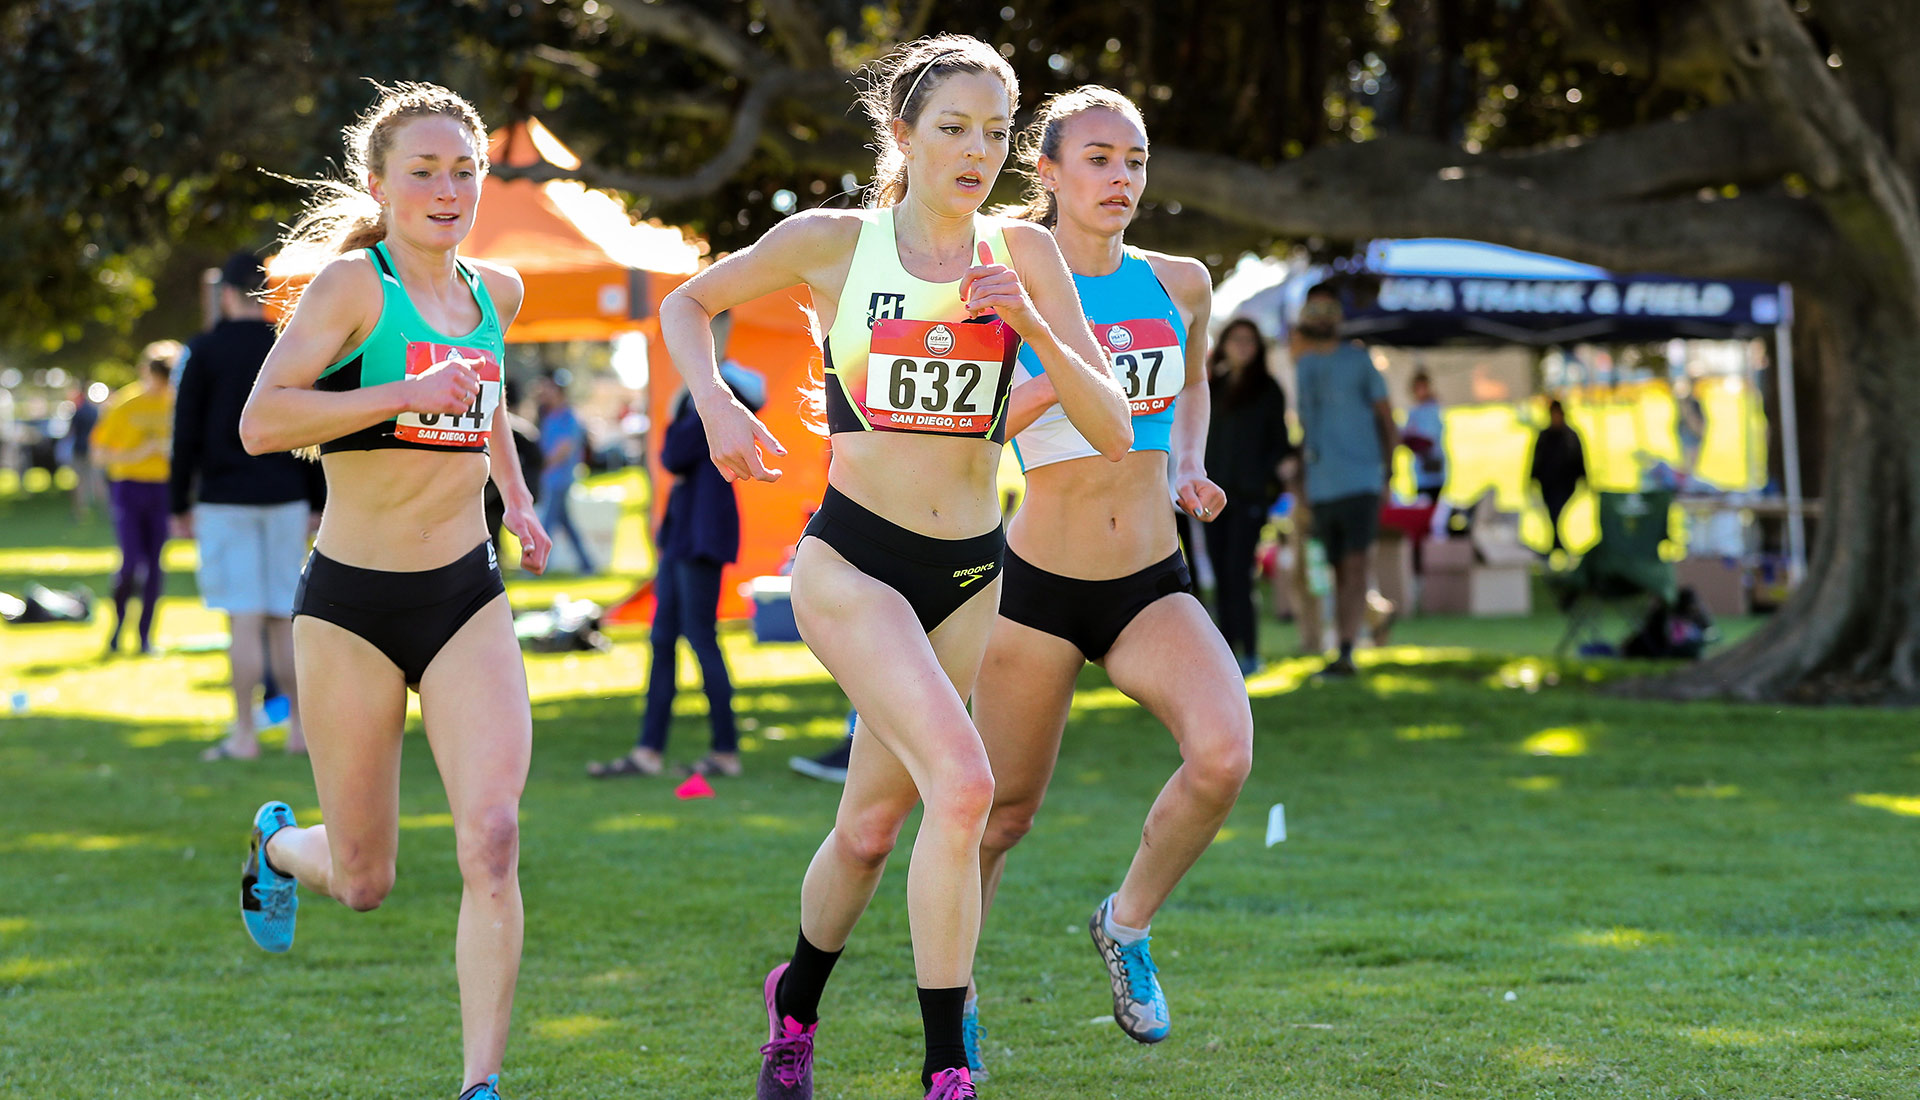 Brooks pro runner Natosha Rogers races at the USATF Club Cross-Country Championships.